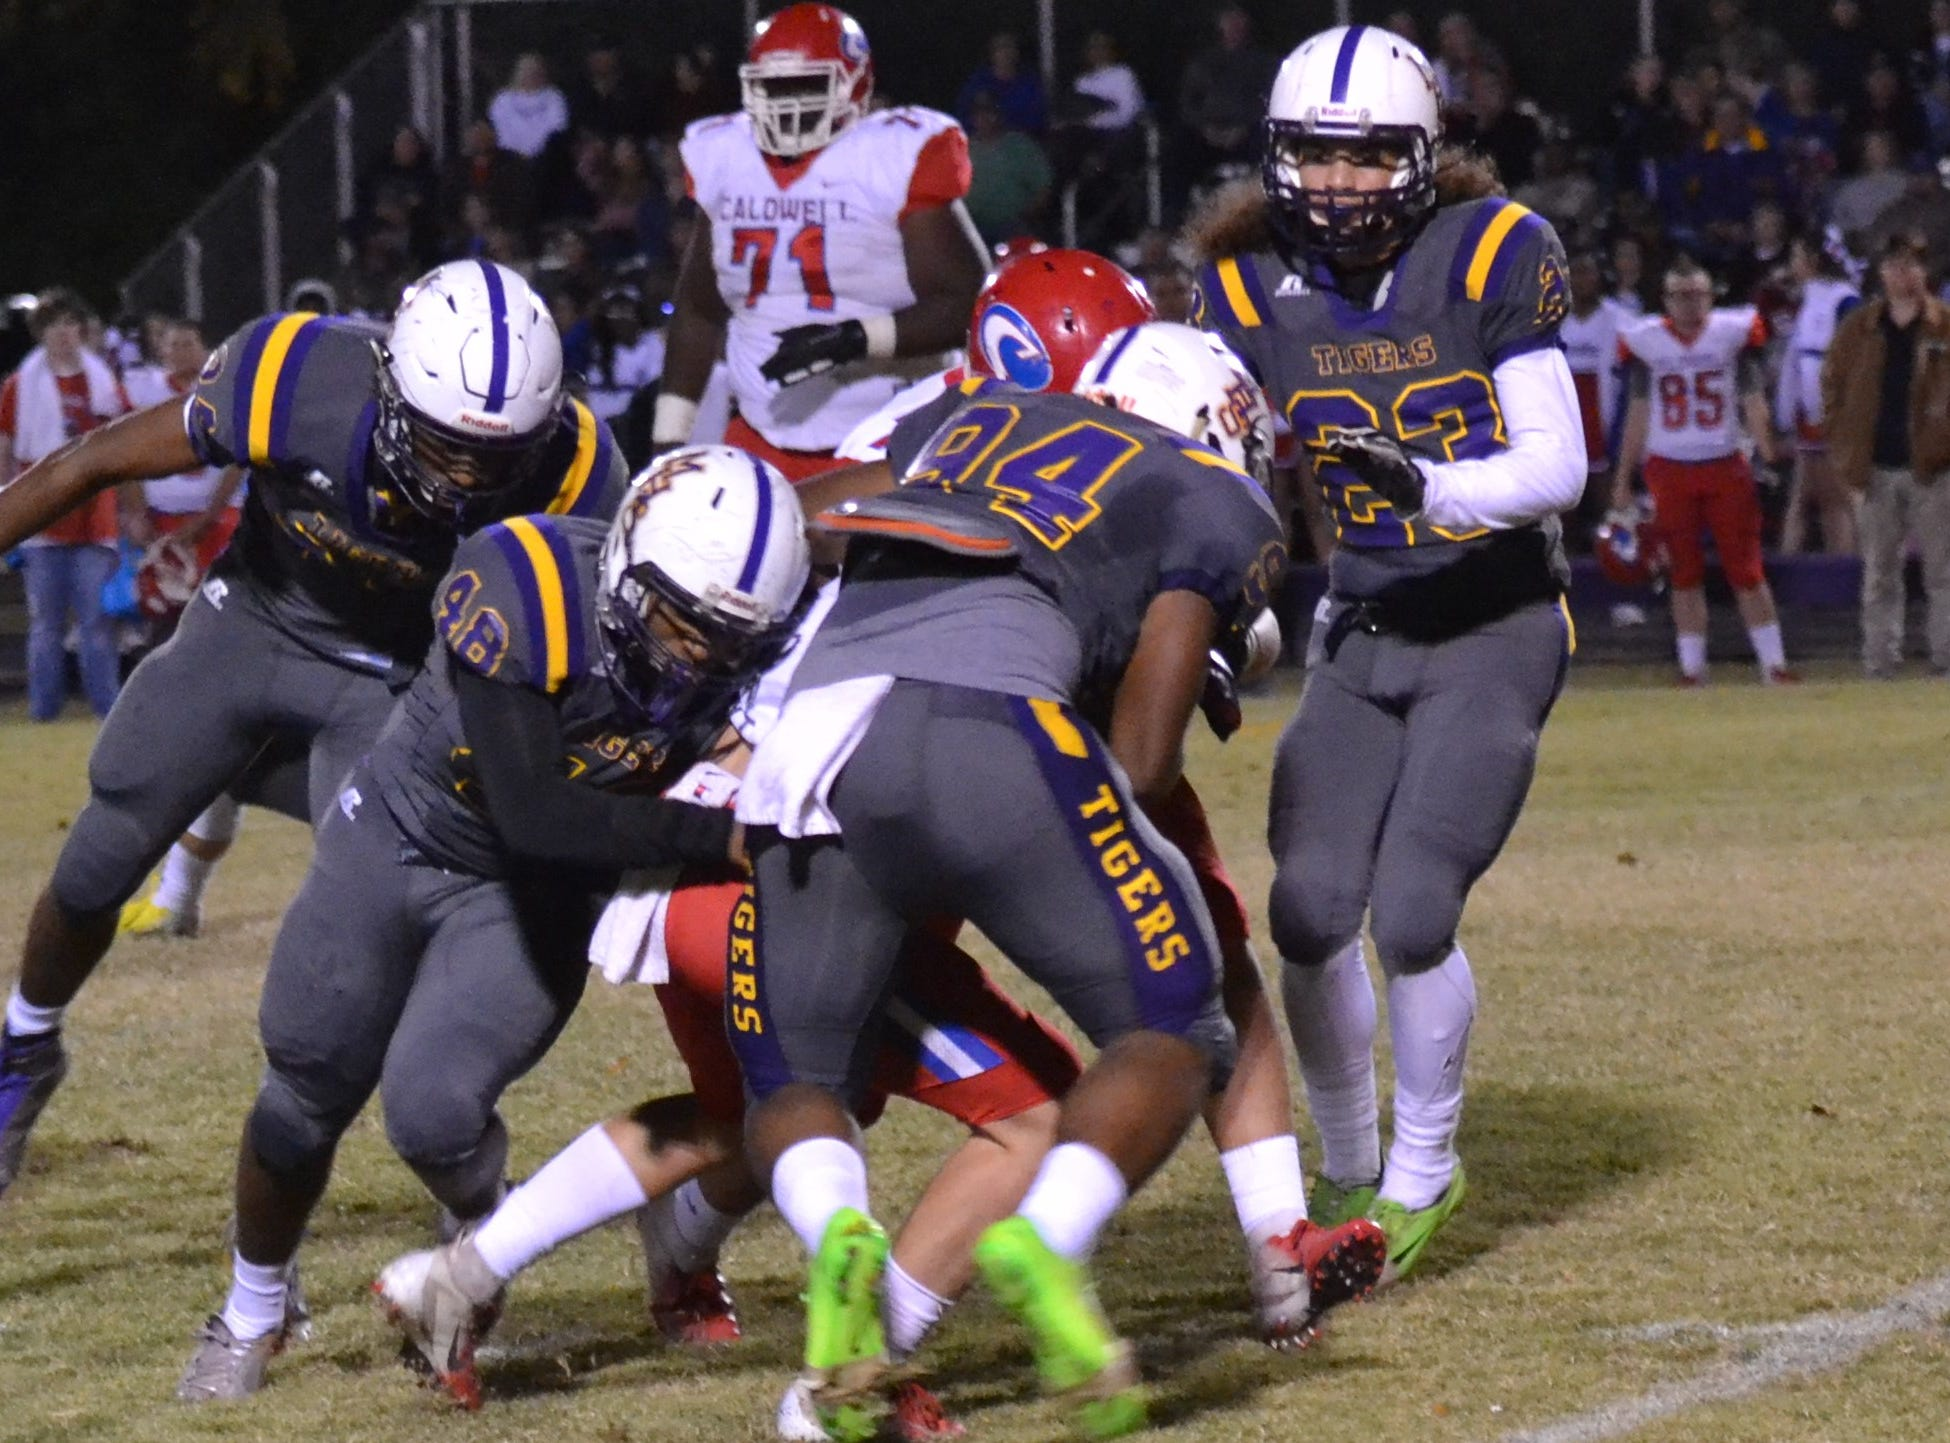 Tiger defenders Al Shamar Martin (48) and Triston Jacobs (94) smother the Caldwell runner. Marksville and Caldwell met in the regular season finale Friday night with Caldwell edging Marksville 13-8.